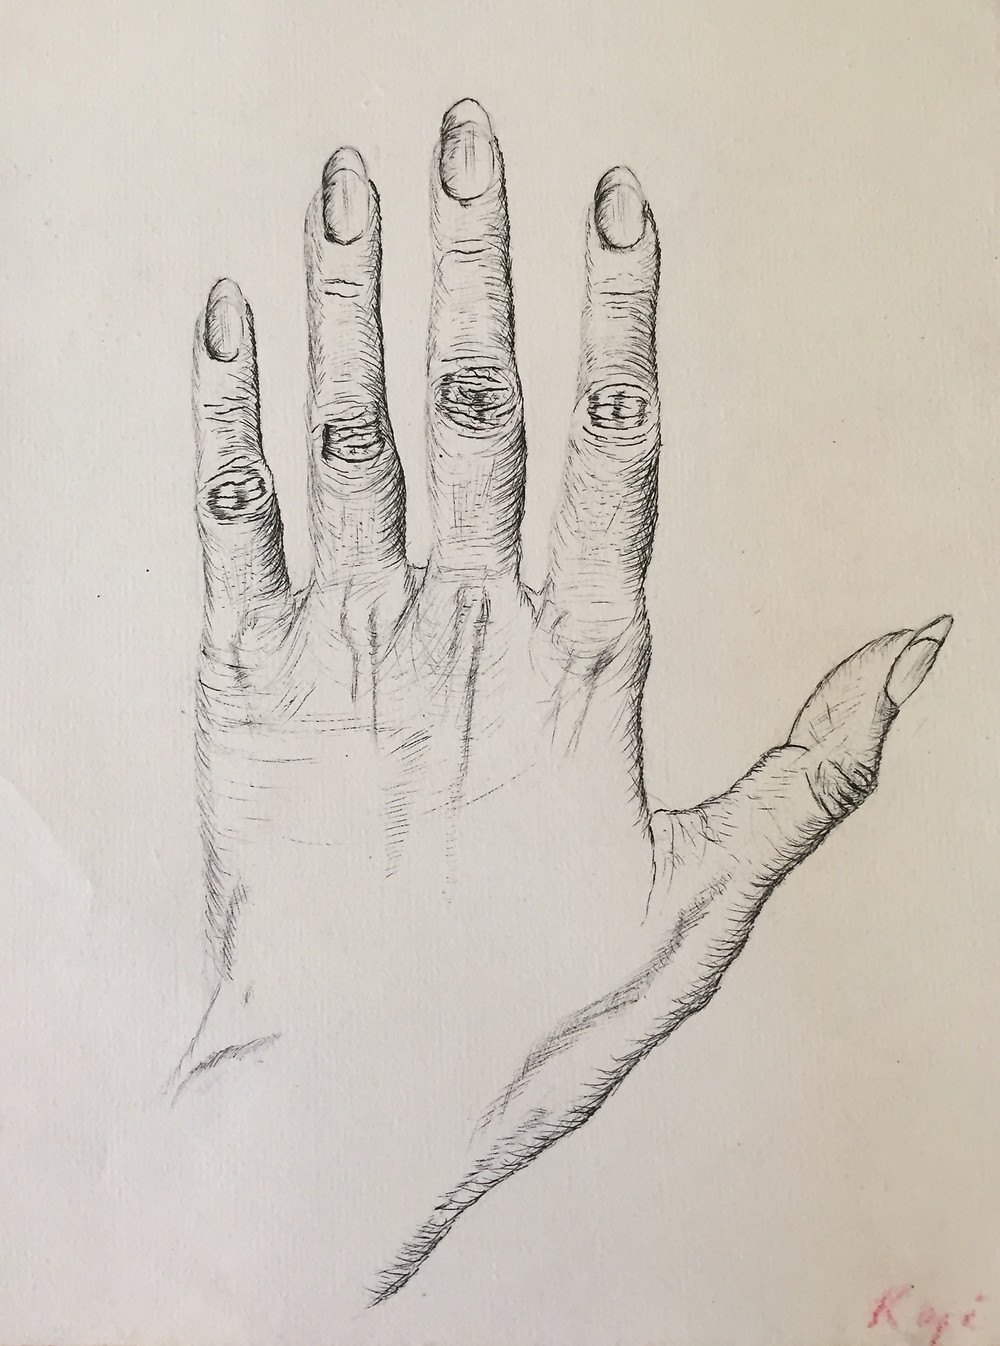 My hand, pen and ink, circa 1988, drawn for an art class with Elliot Offner.